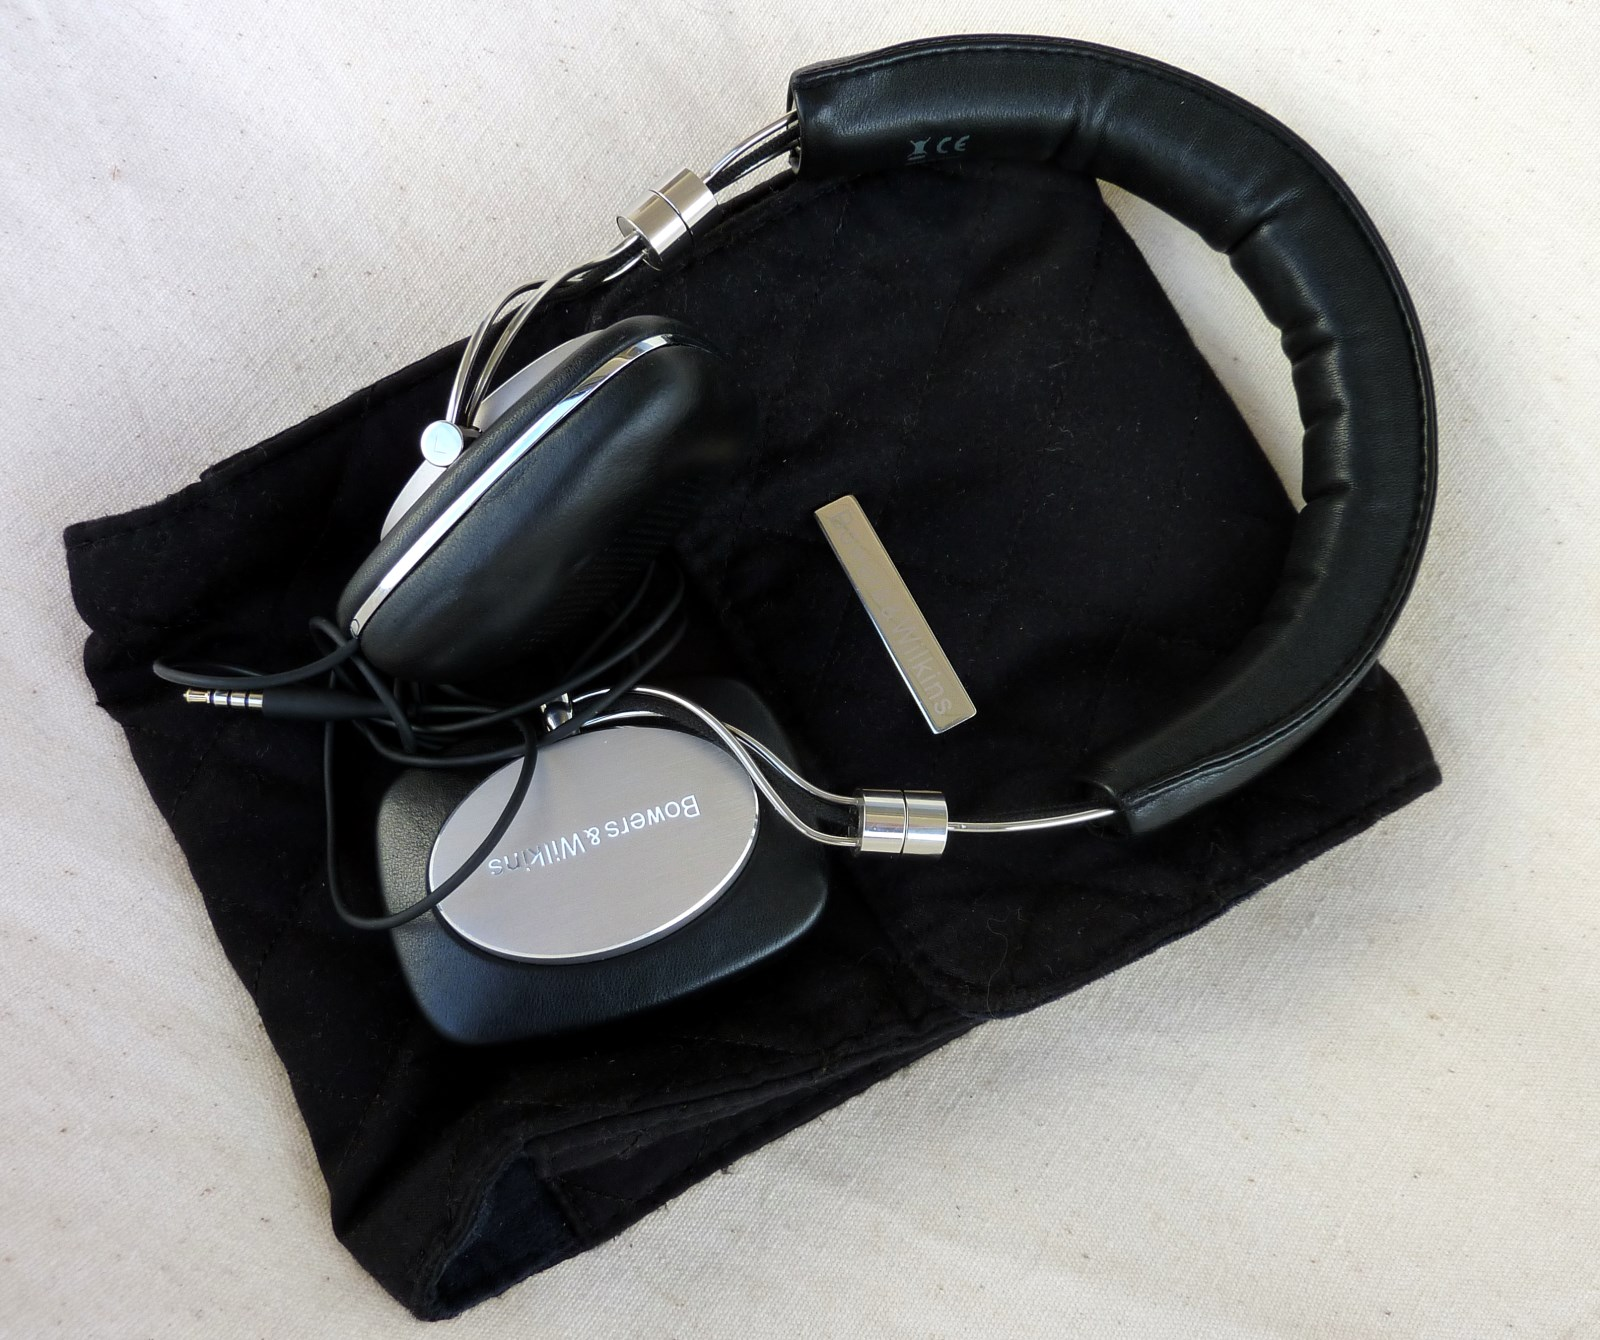 Bowers & Wilkins P5 - after almost 3 years of use